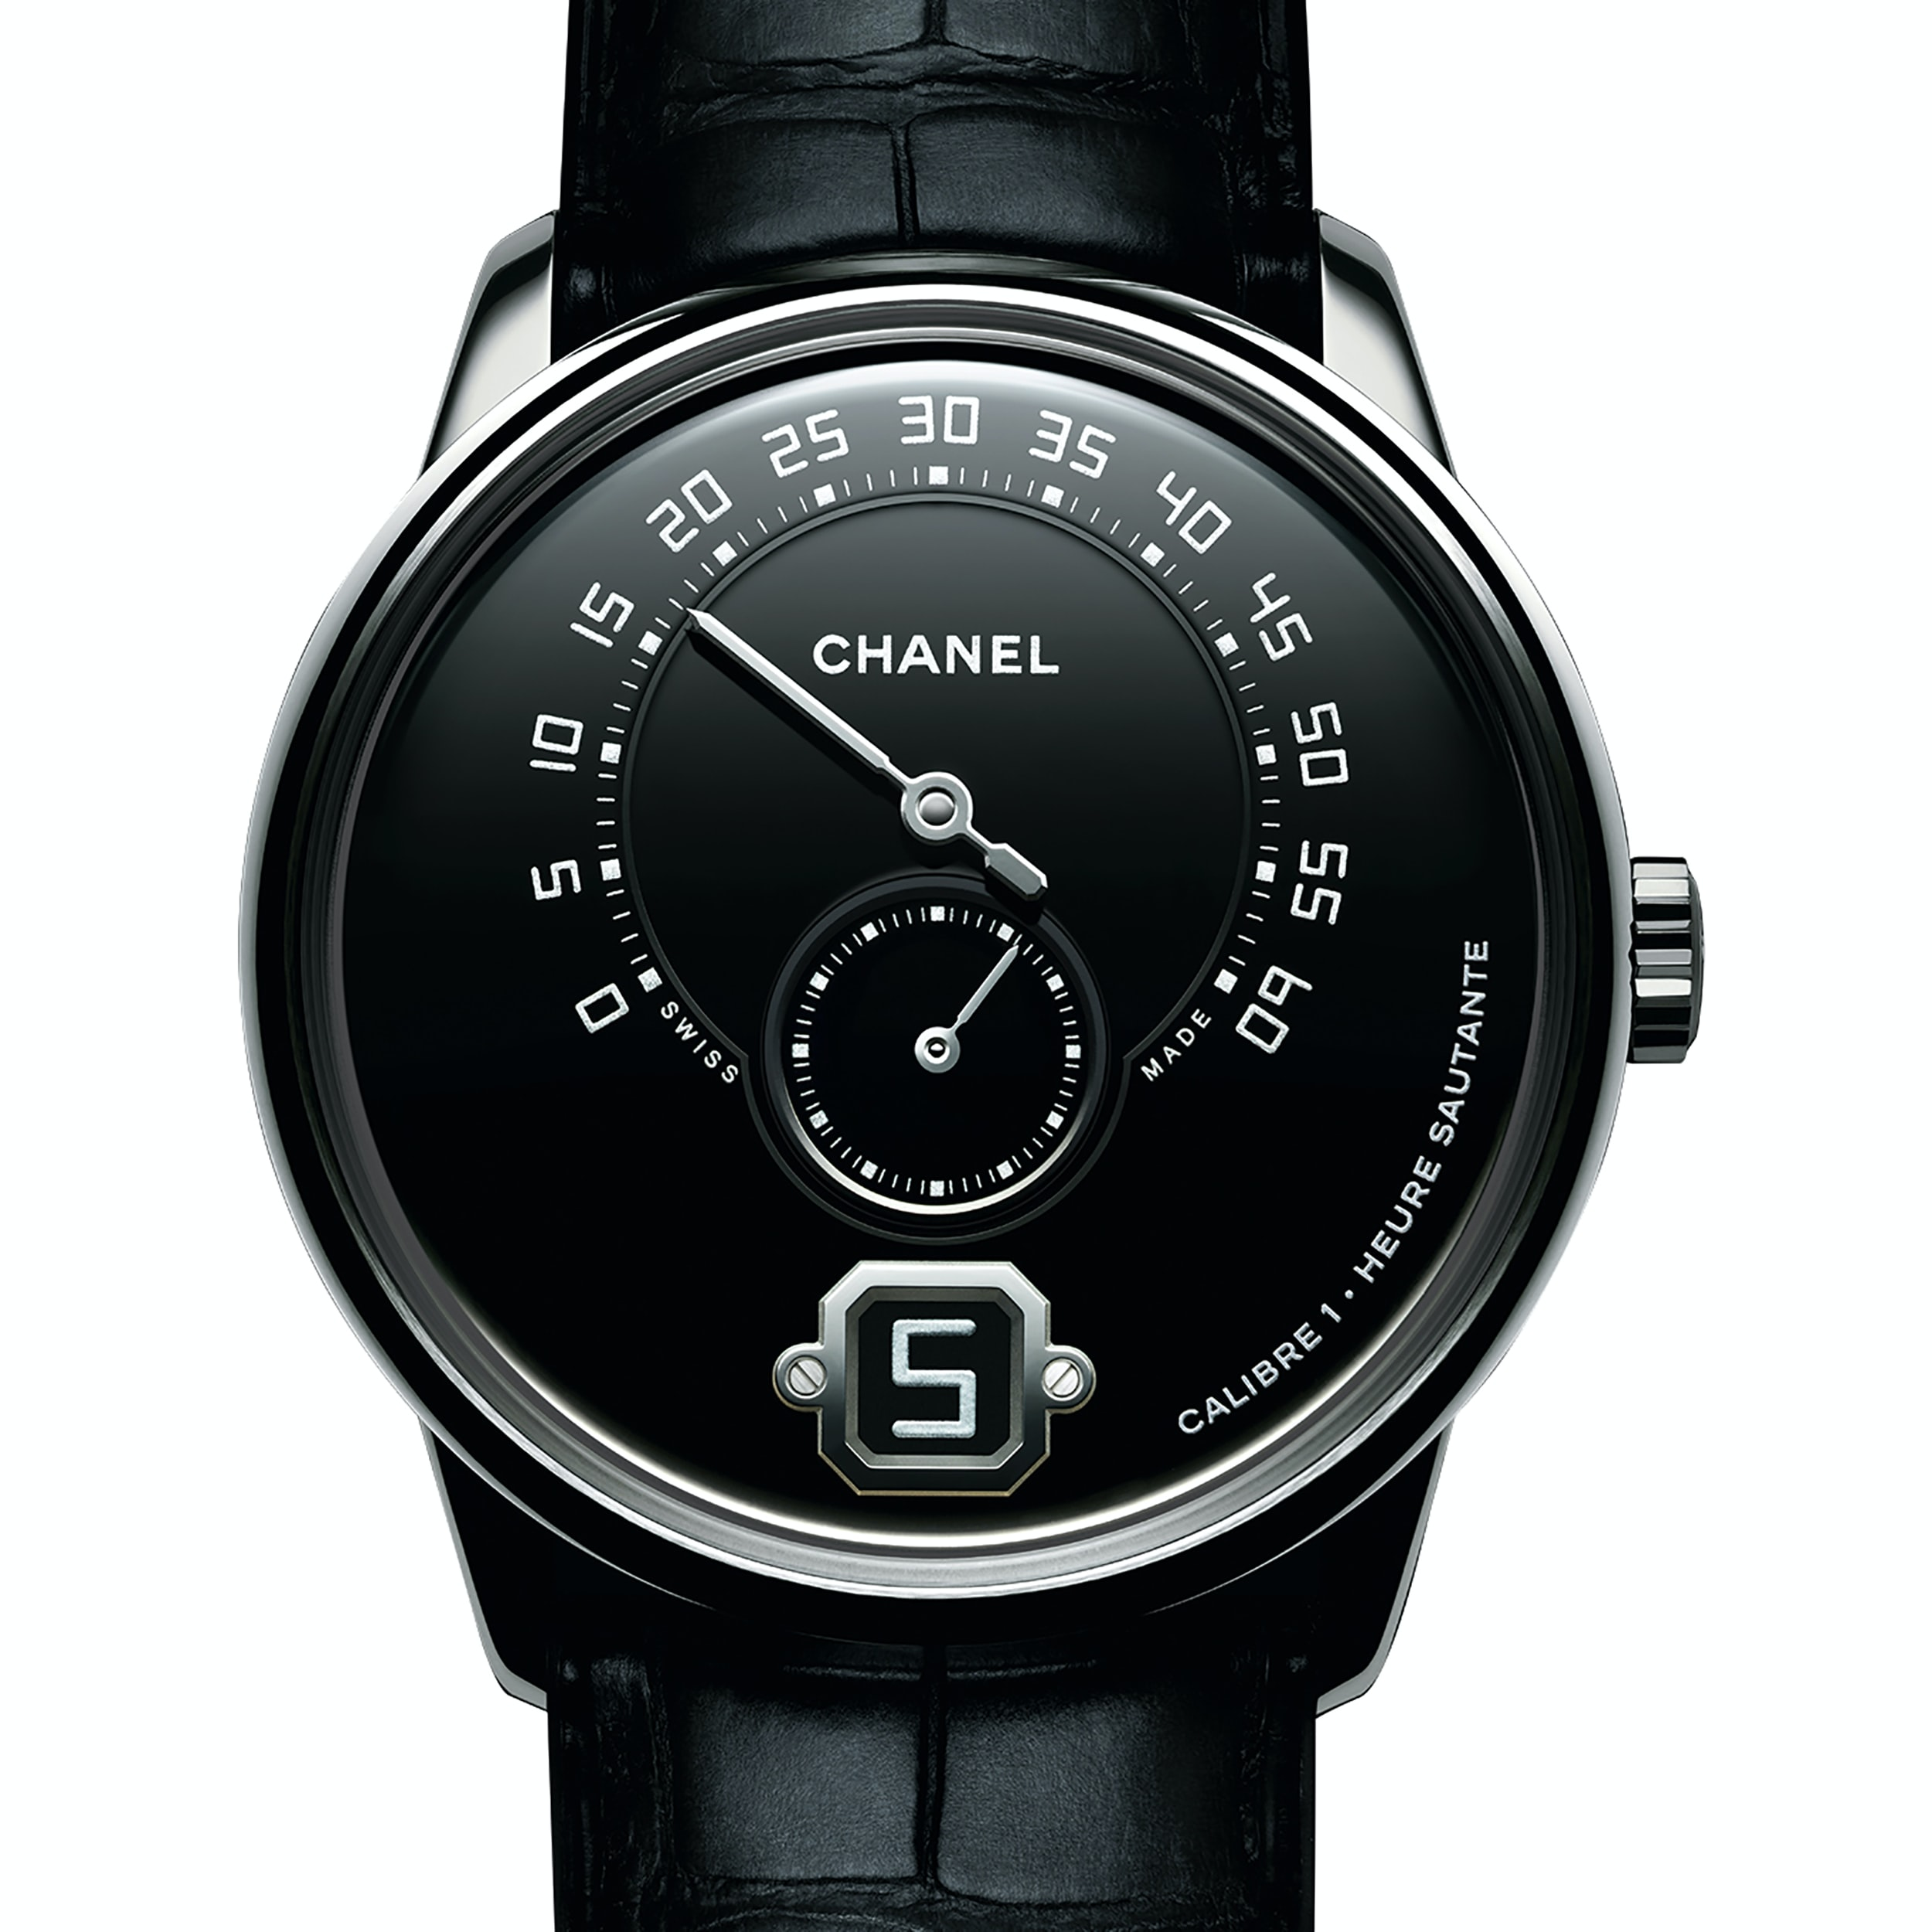 monsieur de chanel platinum black dial Introducing: The Monsieur de Chanel Limited Edition In Platinum With Black Enamel Dial Introducing: The Monsieur de Chanel Limited Edition In Platinum With Black Enamel Dial Chanel Inline 3